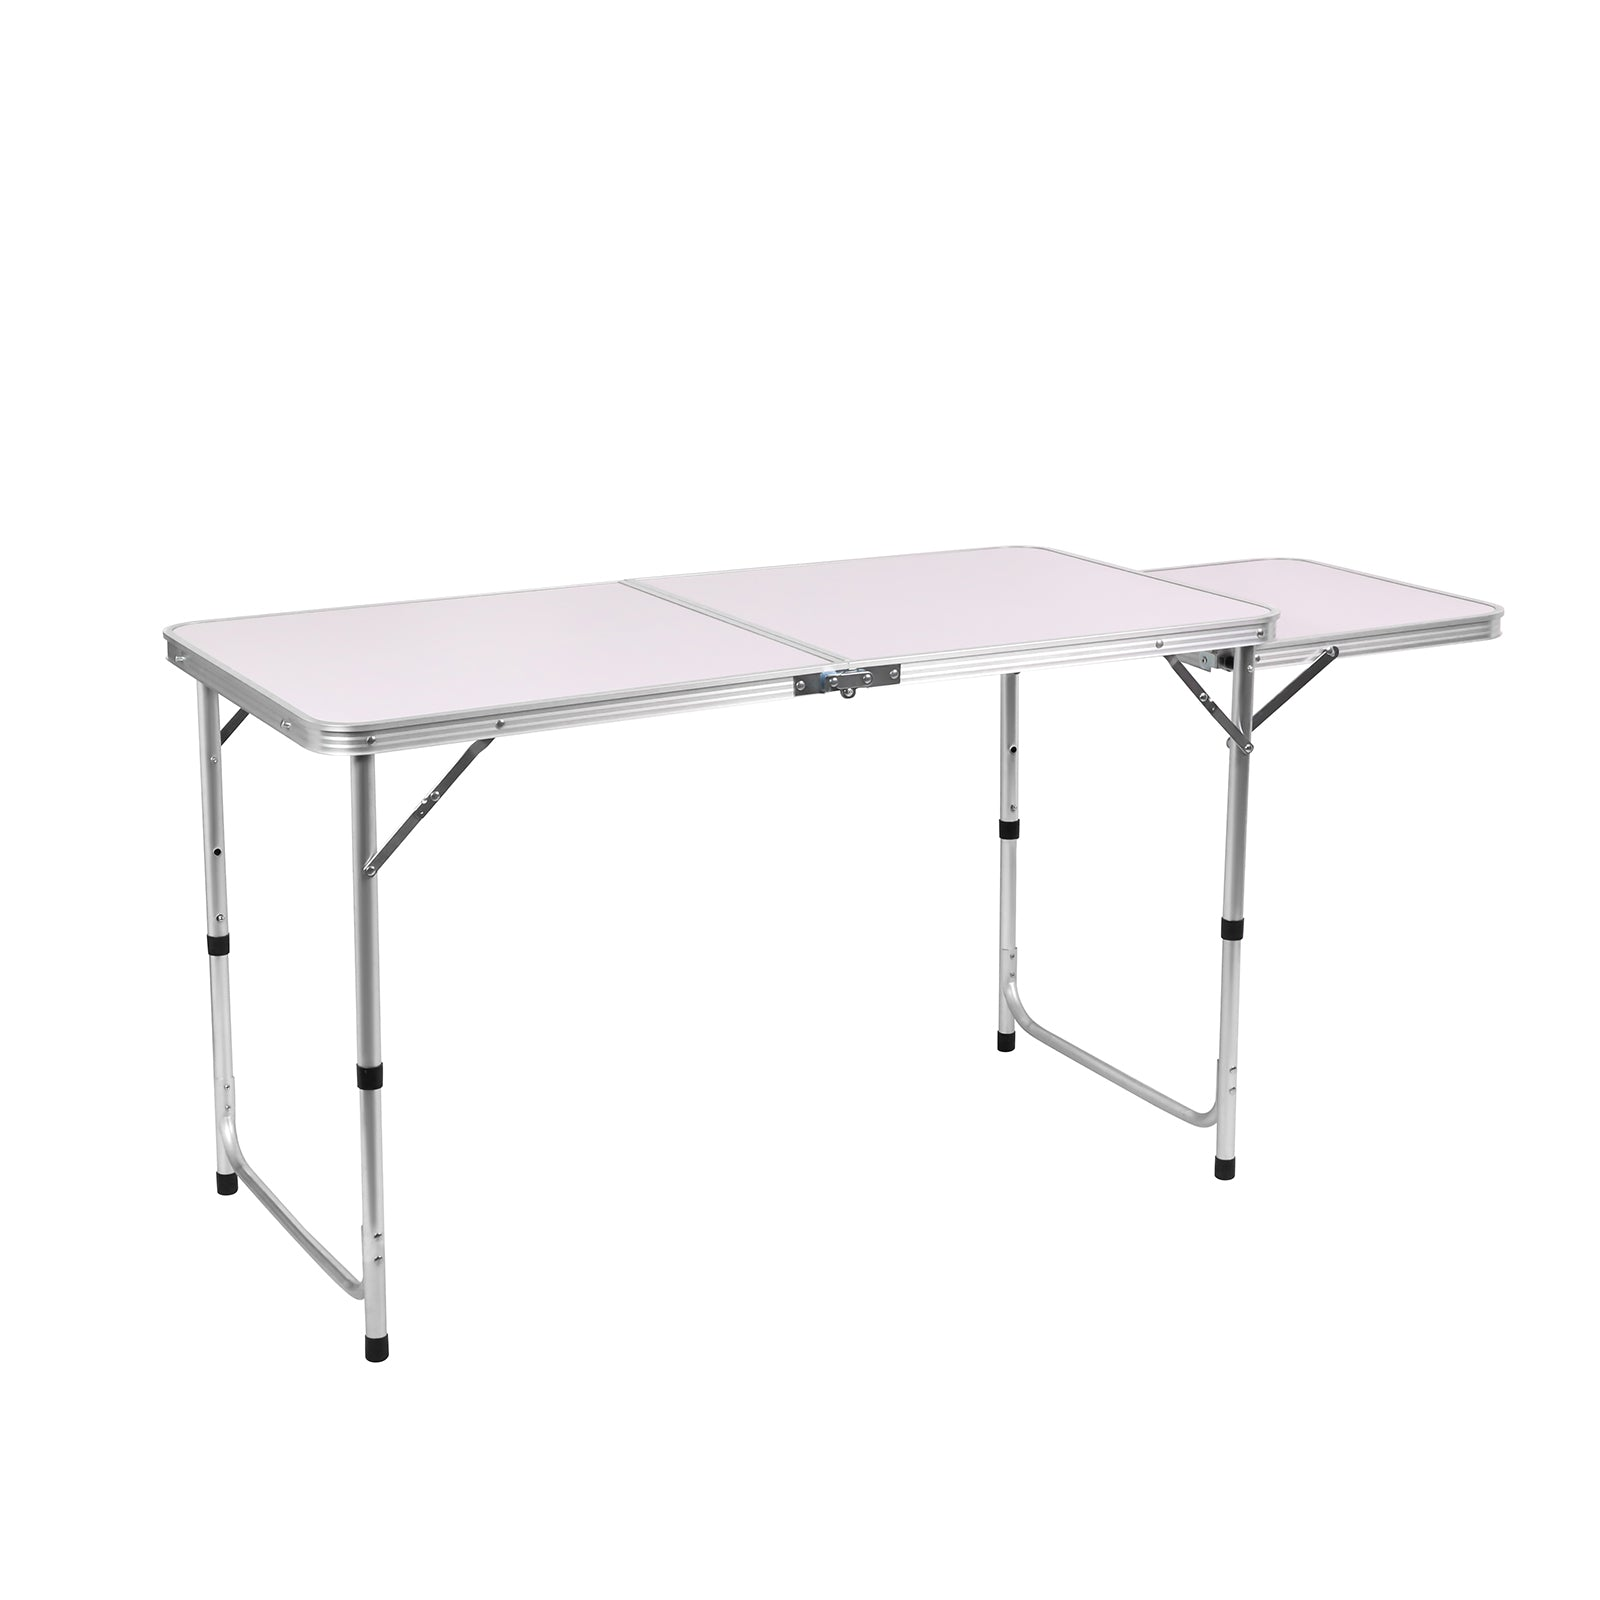 Folding Camping Picnic Table w/Extended Panel, Compact Aluminum Lightweight Picnic Table Multi-Function BBQ Food Preparation Outdoor Indoor Kitchen Utility Table